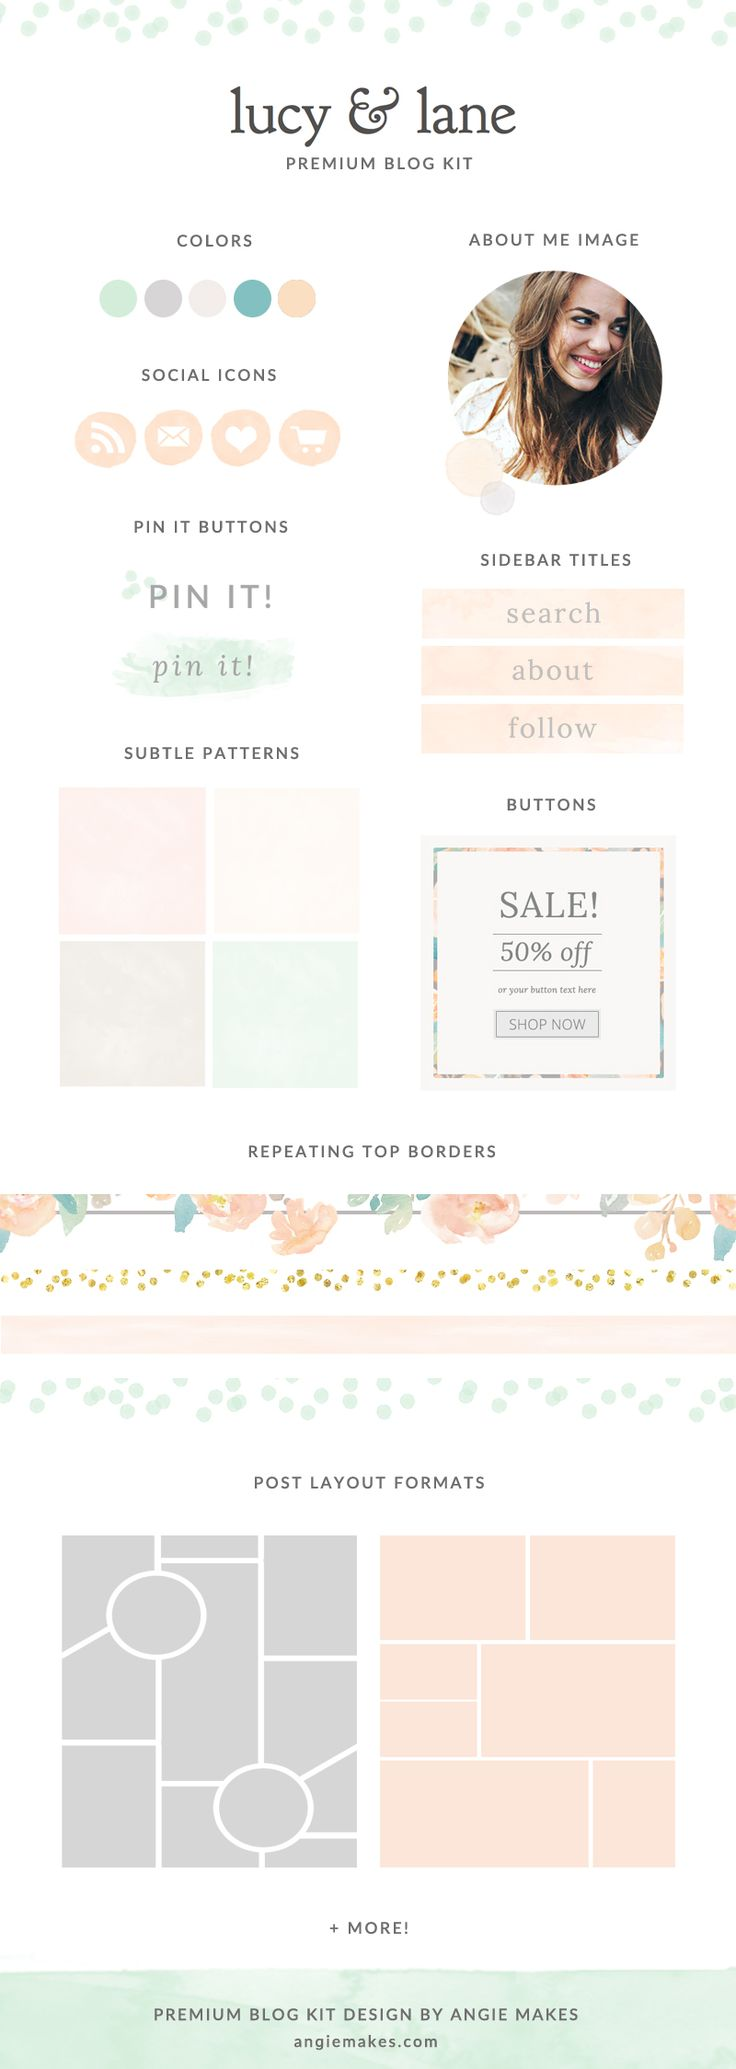 Cute Watercolor Blog Graphics Kit With Background Images, Logo Elements, Icons, Buttons, and more! - angiemakes.com